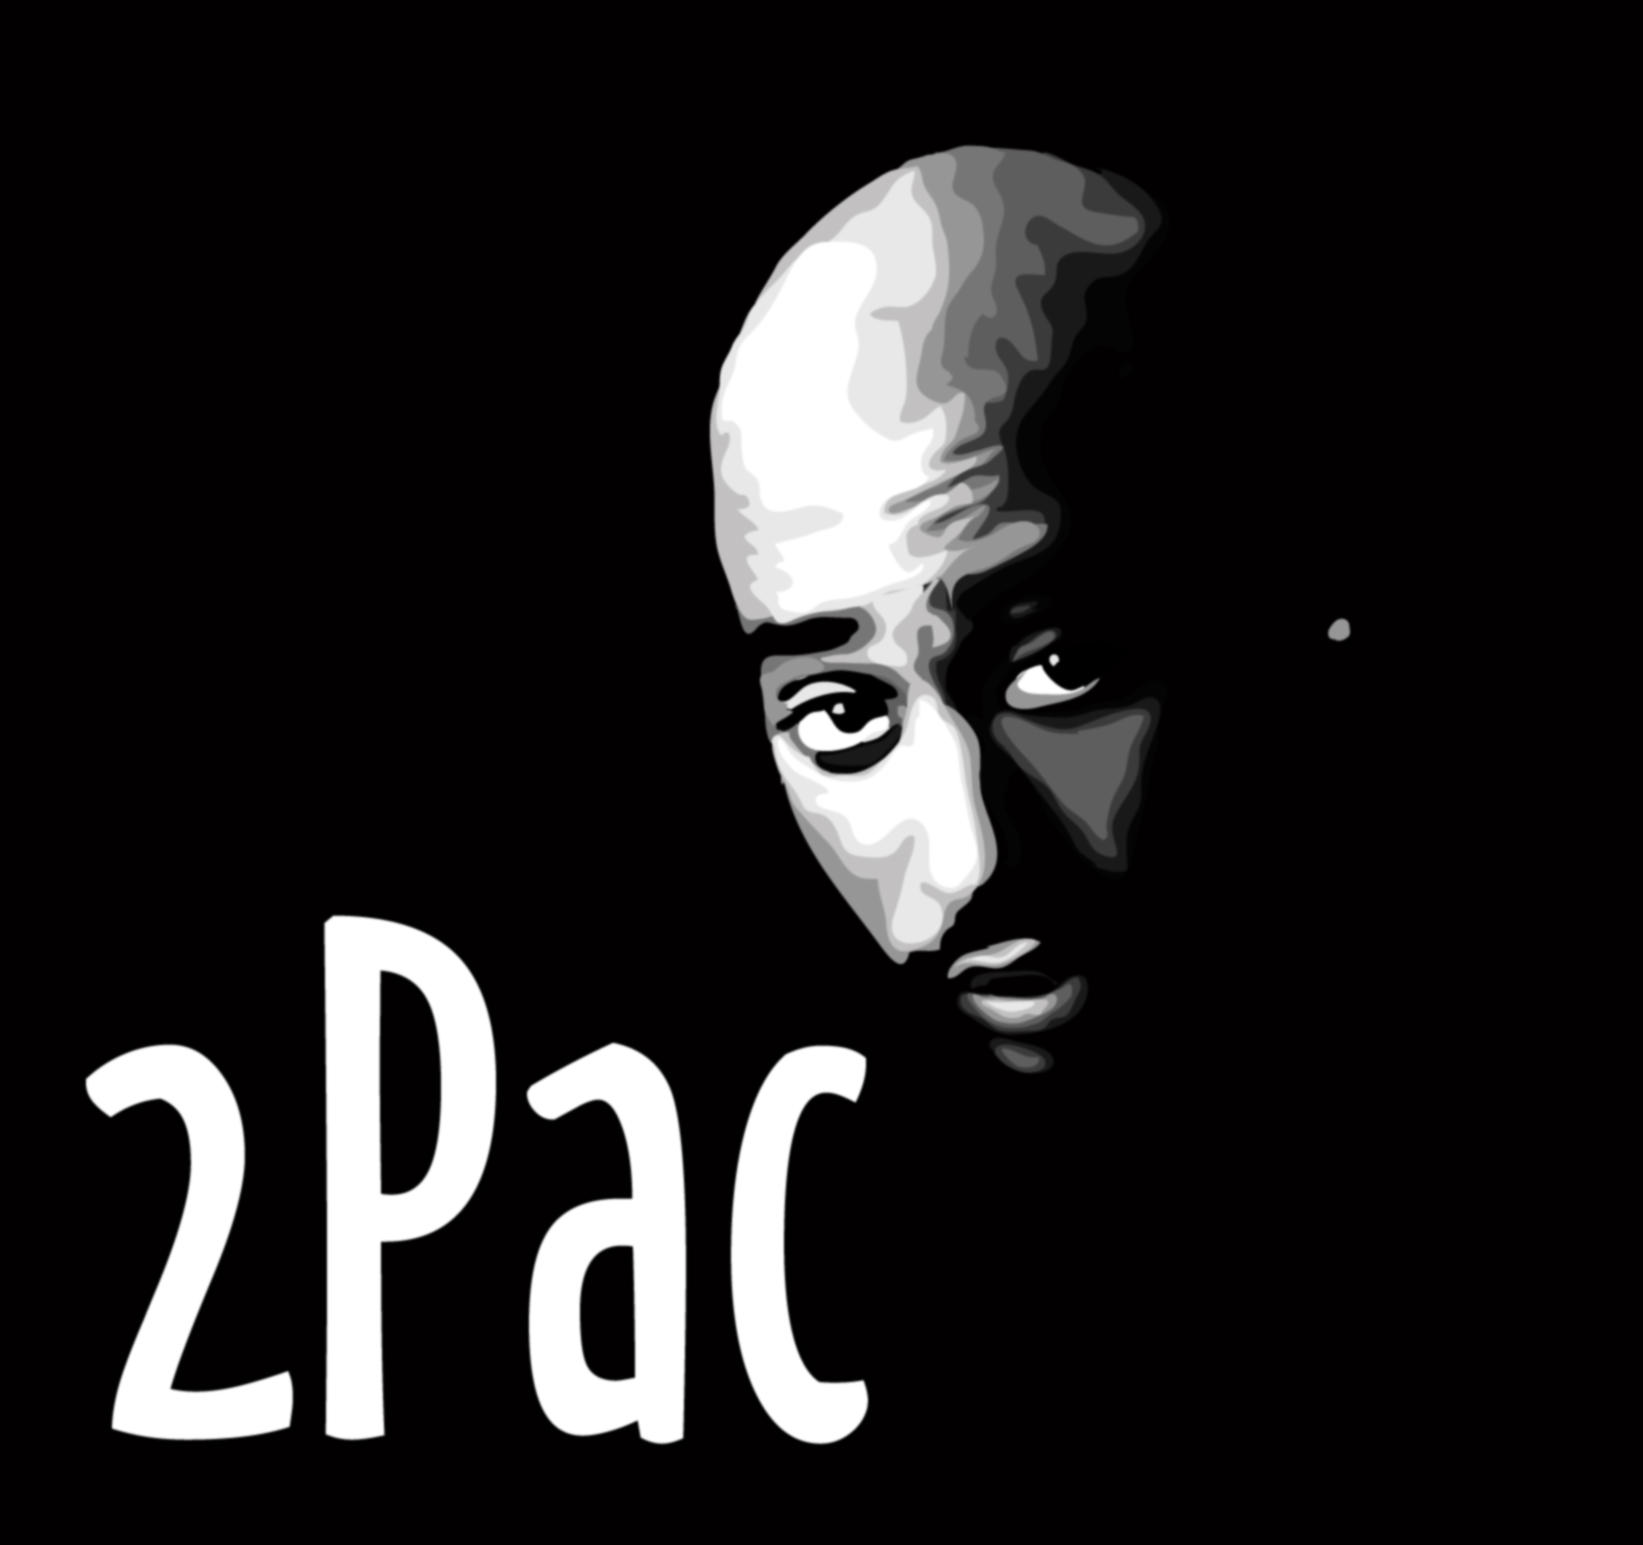 2pac By SKetCh-ThiS-X On DeviantArt